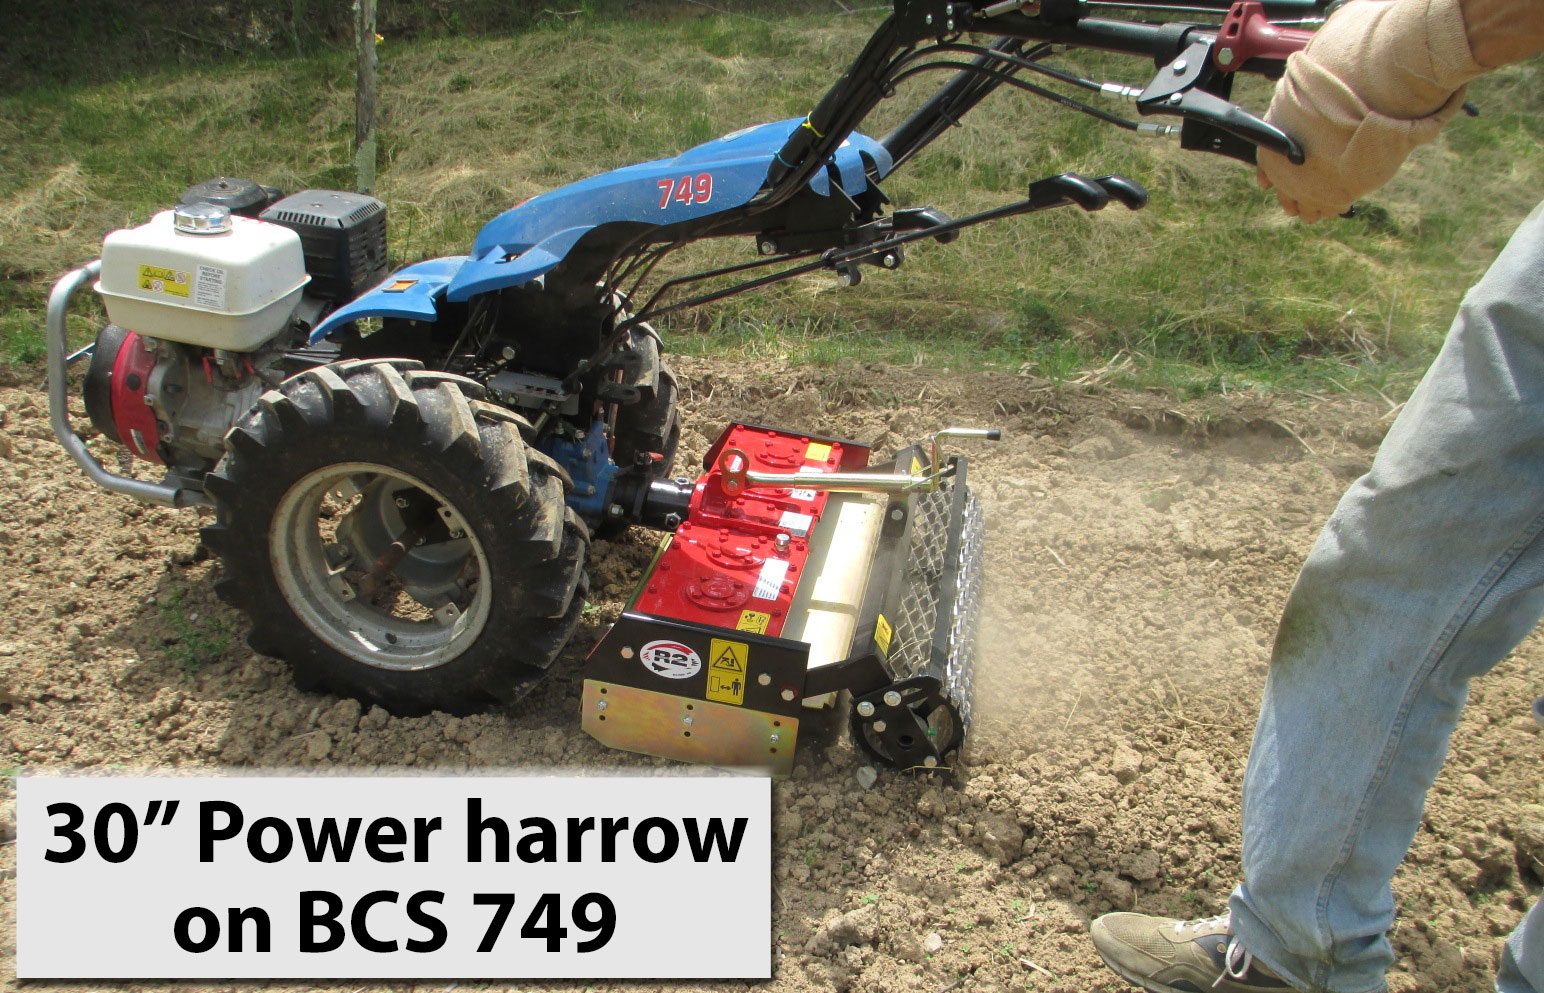 Show home build gas powered mini tractors - Of The 30 Or So Companies Manufacturing 2 Wheel Tractors In Europe Bcs Is By Far The Largest Founded In 1942 Near Milan Italy Bcs Sells Their Equipment